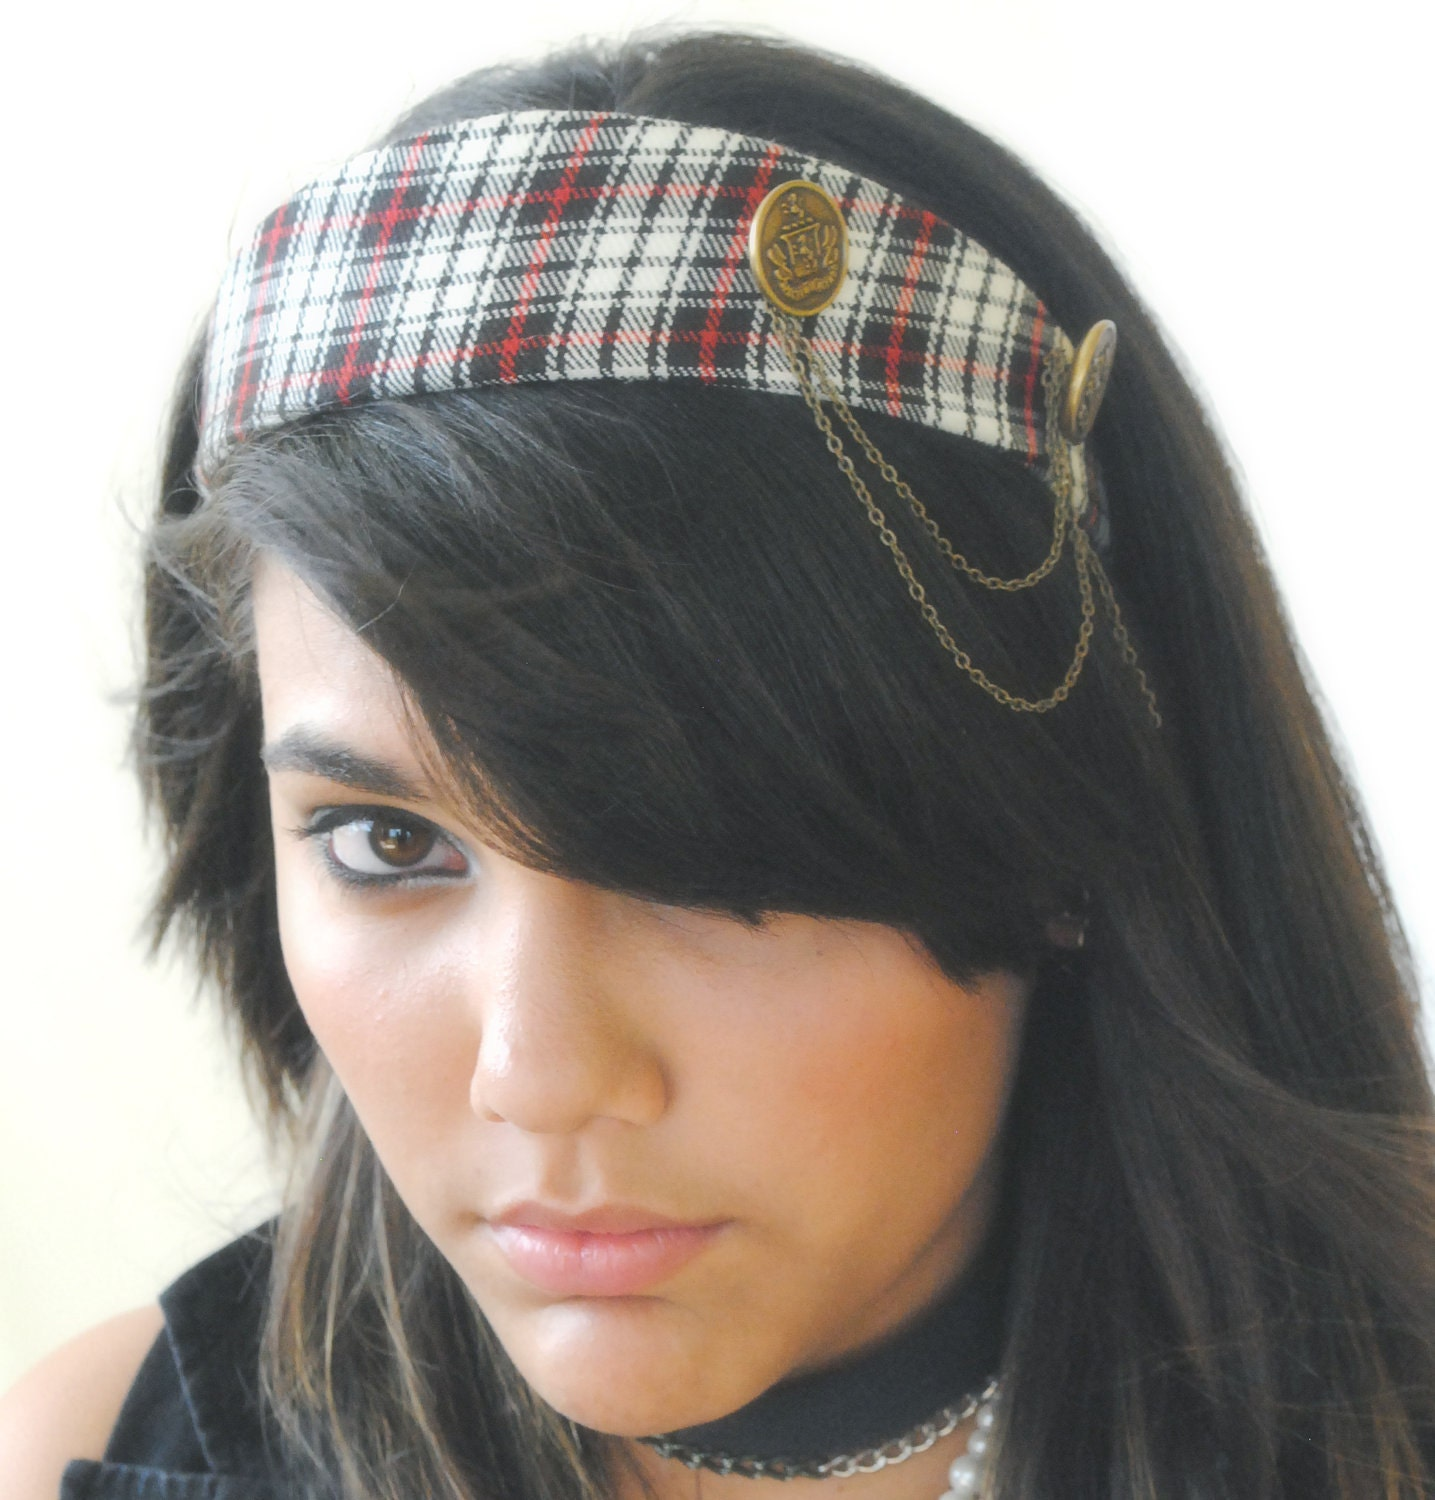 Headband Plaid Military Vintage Inspired Red Black White Vintage Button Antique Chain - by Sophia Touassa Millinery & Accessories